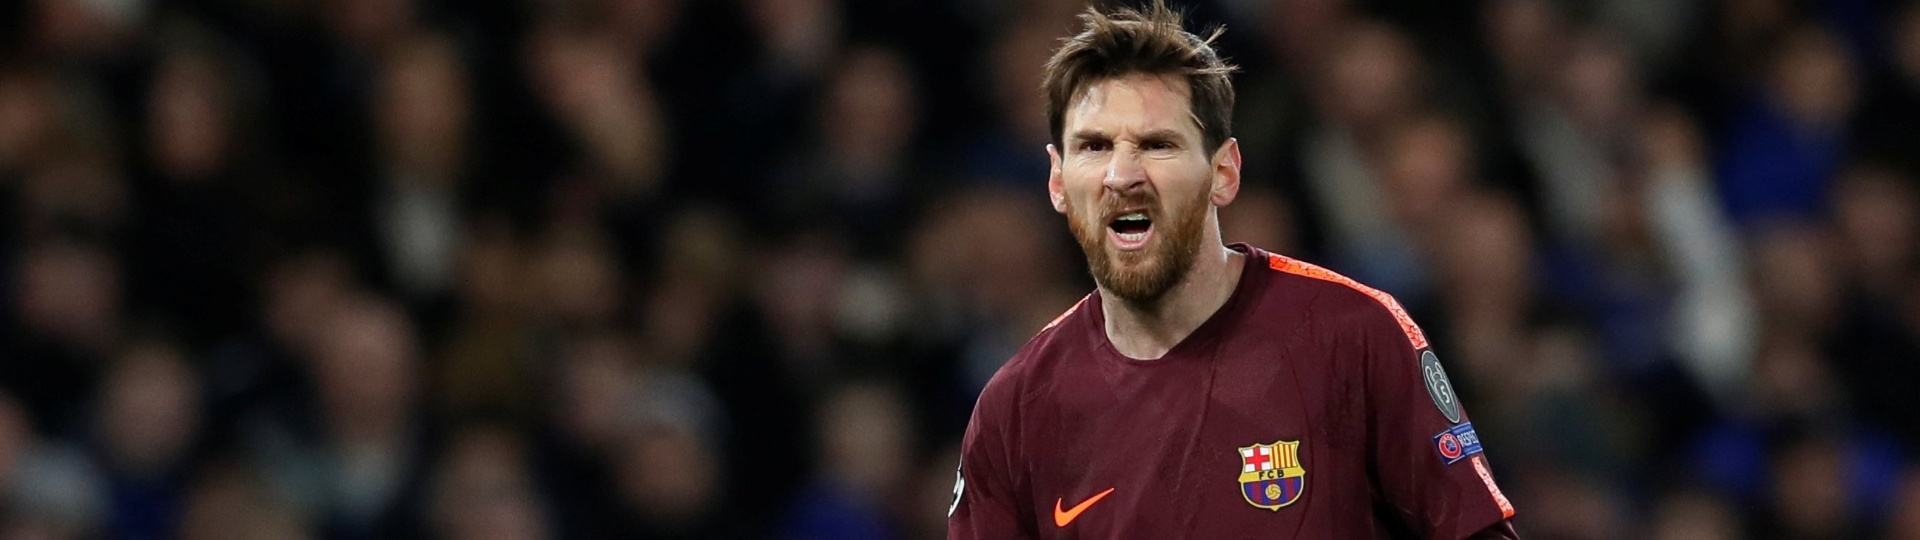 Barcelona Chelsea Messi careta